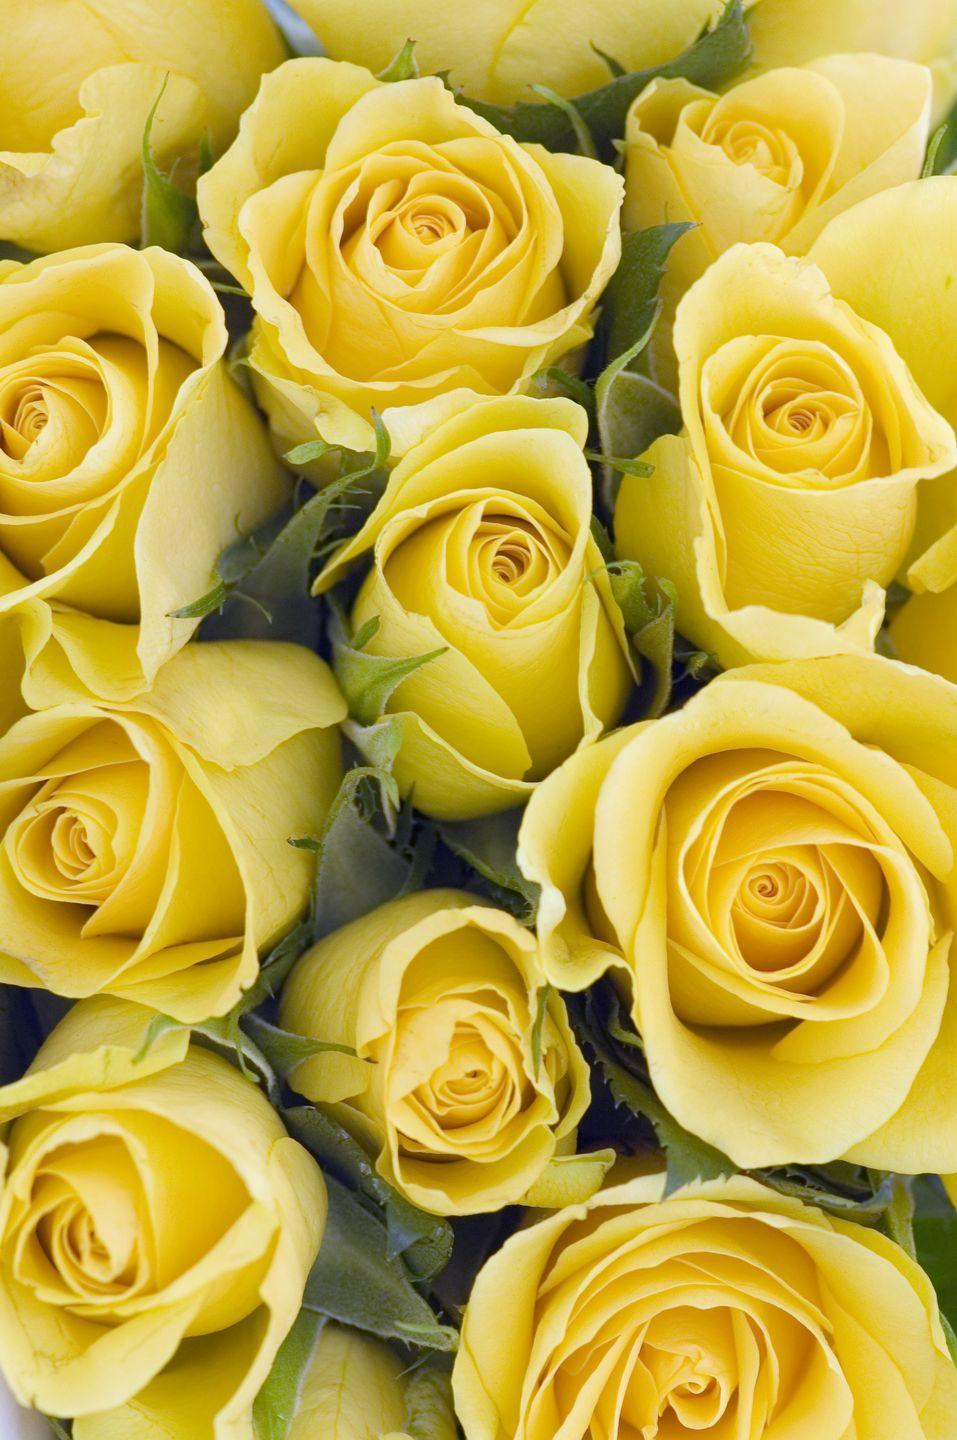 """<p>You wouldn't think it's cruel to gift someone a bouquet, but these sunny flowers imply <a href=""""http://www.lillysrosegarden.com/rose-colors-symbolism.html"""" rel=""""nofollow noopener"""" target=""""_blank"""" data-ylk=""""slk:jealousy and infidelity"""" class=""""link rapid-noclick-resp"""">jealousy and infidelity</a>. In modern times, however, this variety is associated with friendship and cheer due to the vibrant color. </p><p><a class=""""link rapid-noclick-resp"""" href=""""https://go.redirectingat.com?id=74968X1596630&url=https%3A%2F%2Fwww.1800flowers.com%2Fsunshine-roses-104514&sref=https%3A%2F%2Fwww.goodhousekeeping.com%2Fholidays%2Fvalentines-day-ideas%2Fg1352%2Frose-color-meanings%2F"""" rel=""""nofollow noopener"""" target=""""_blank"""" data-ylk=""""slk:SHOP YELLOW ROSES"""">SHOP YELLOW ROSES</a></p><p><strong><strong>RELATED:</strong></strong> <a href=""""https://www.goodhousekeeping.com/holidays/easter-ideas/g1906/easter-flowers/?slide=1"""" rel=""""nofollow noopener"""" target=""""_blank"""" data-ylk=""""slk:23 So-Pretty Easter Flower Arrangements and Centerpieces"""" class=""""link rapid-noclick-resp"""">23 So-Pretty Easter Flower Arrangements and Centerpieces</a> </p>"""